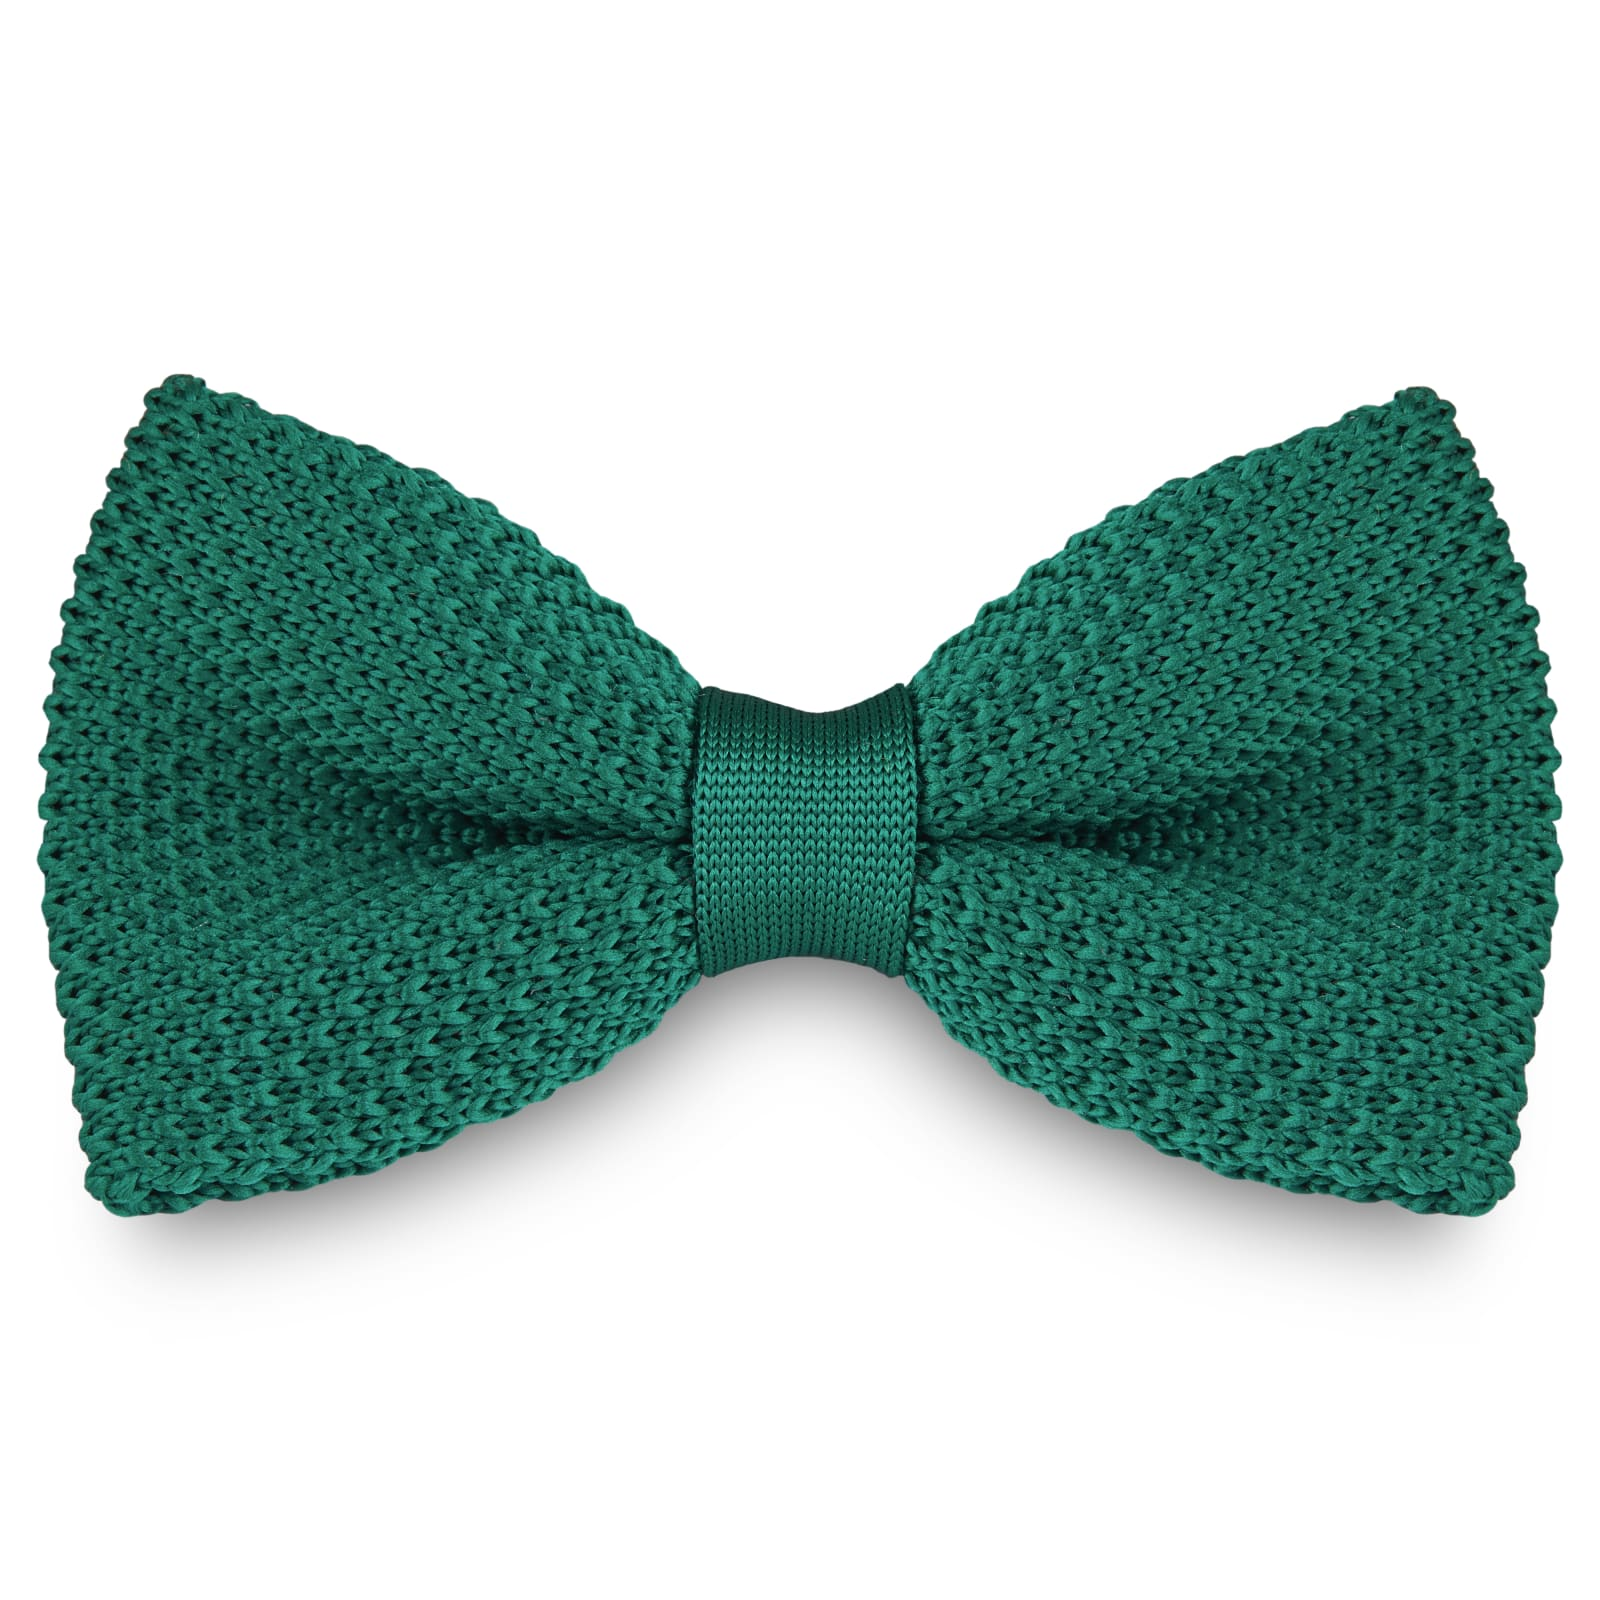 KNITTED FORREST GREEN BOW TIES